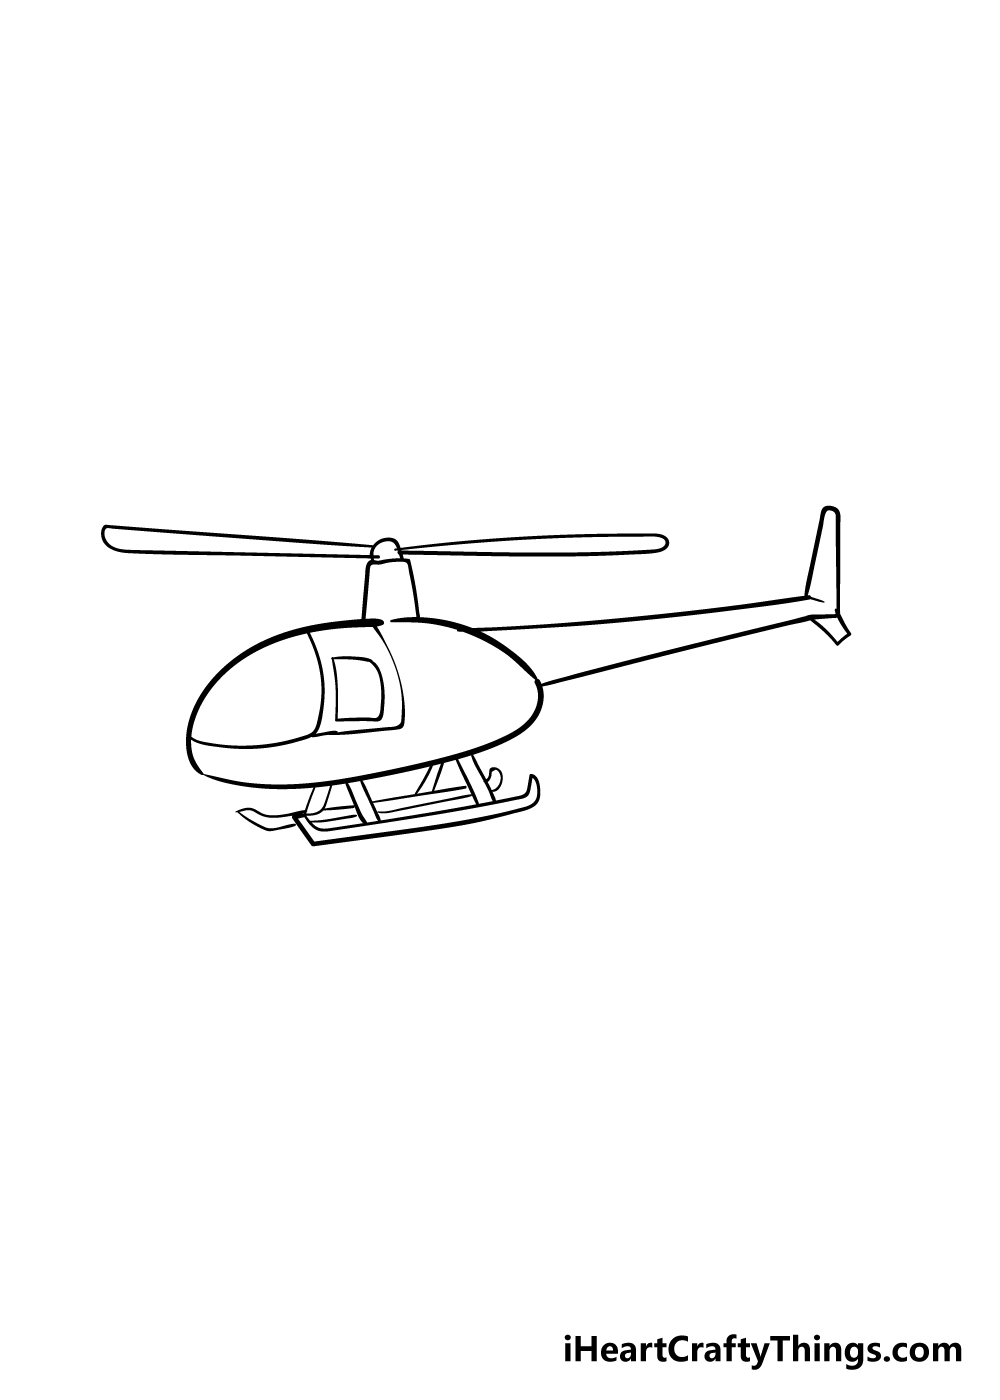 helicopter drawing step 4